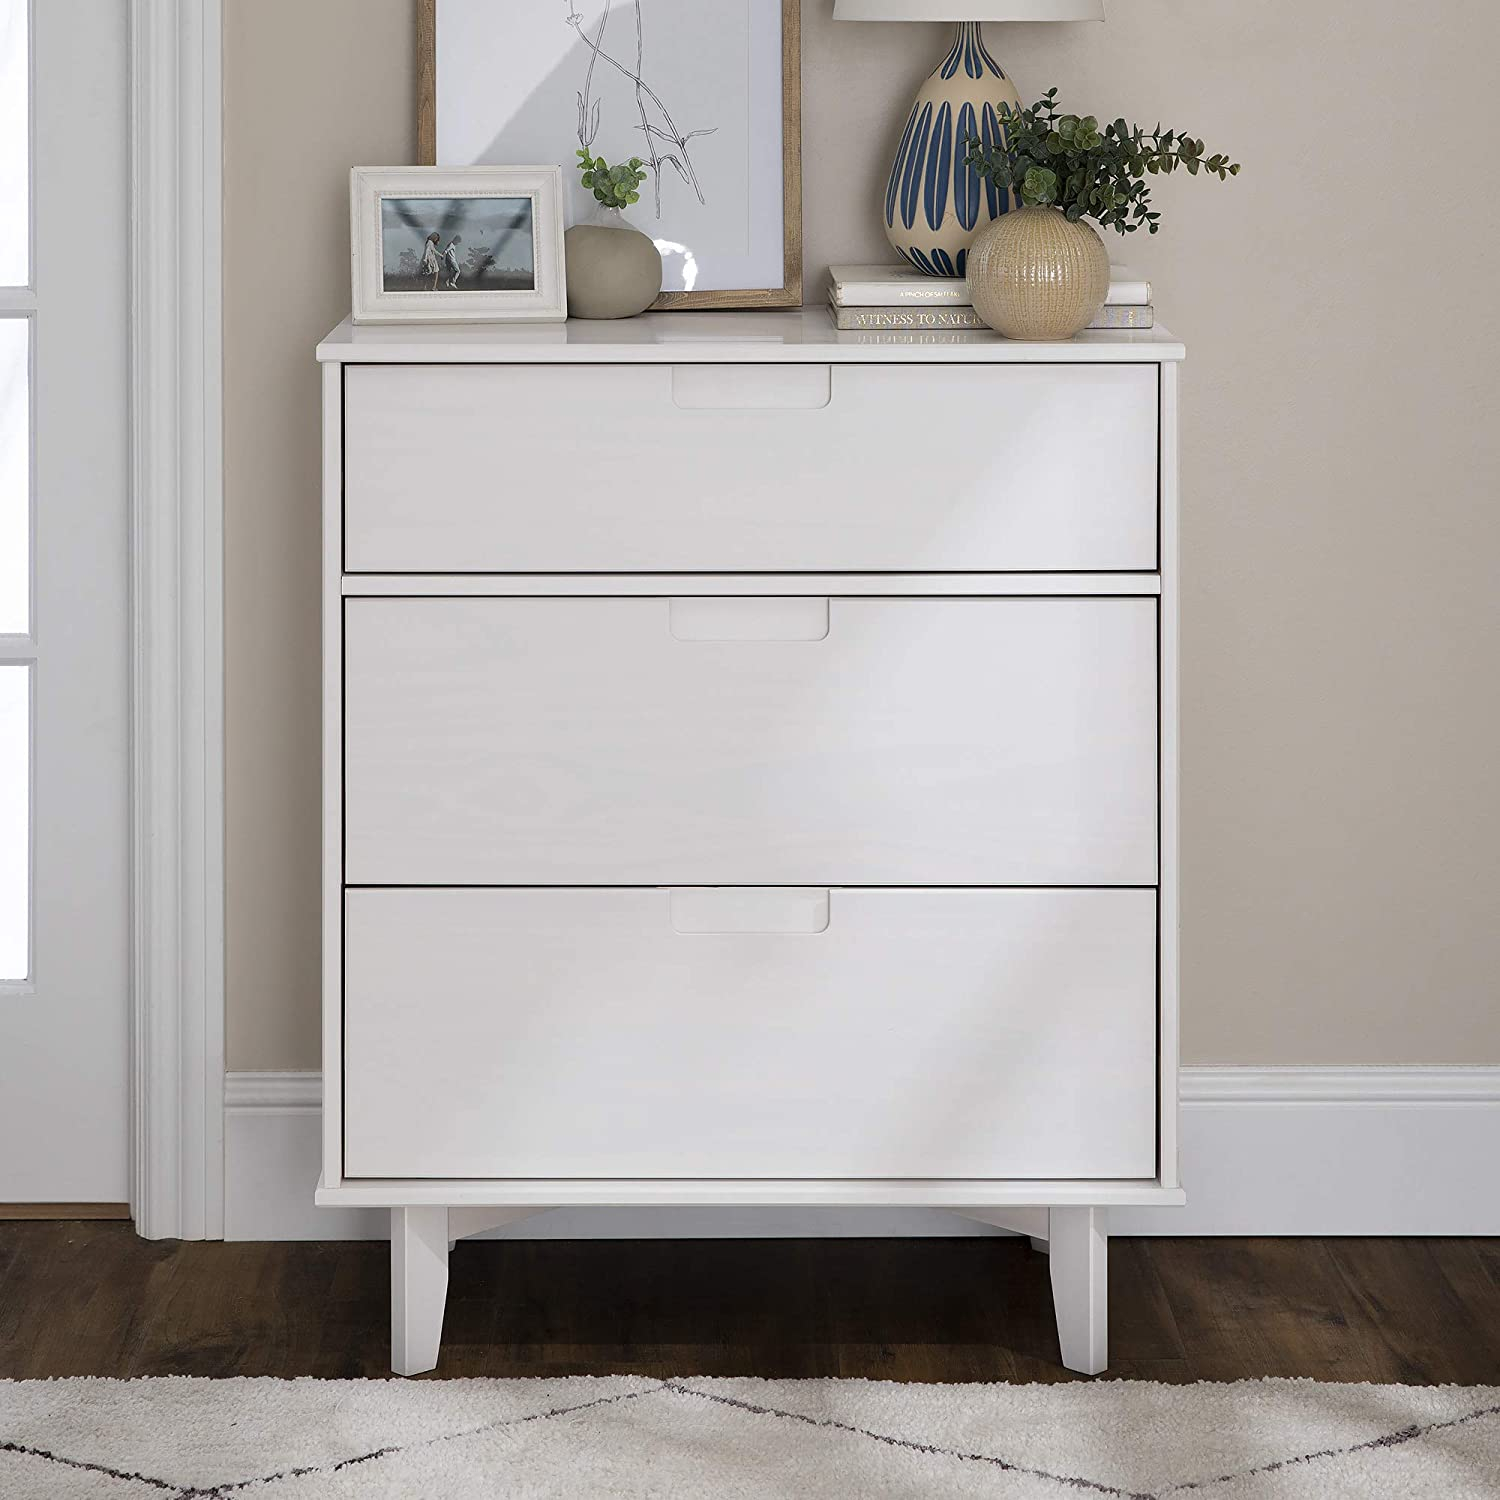 Choice 3-Drawer Groove Free shipping anywhere in the nation Handle Wood - White Dresser